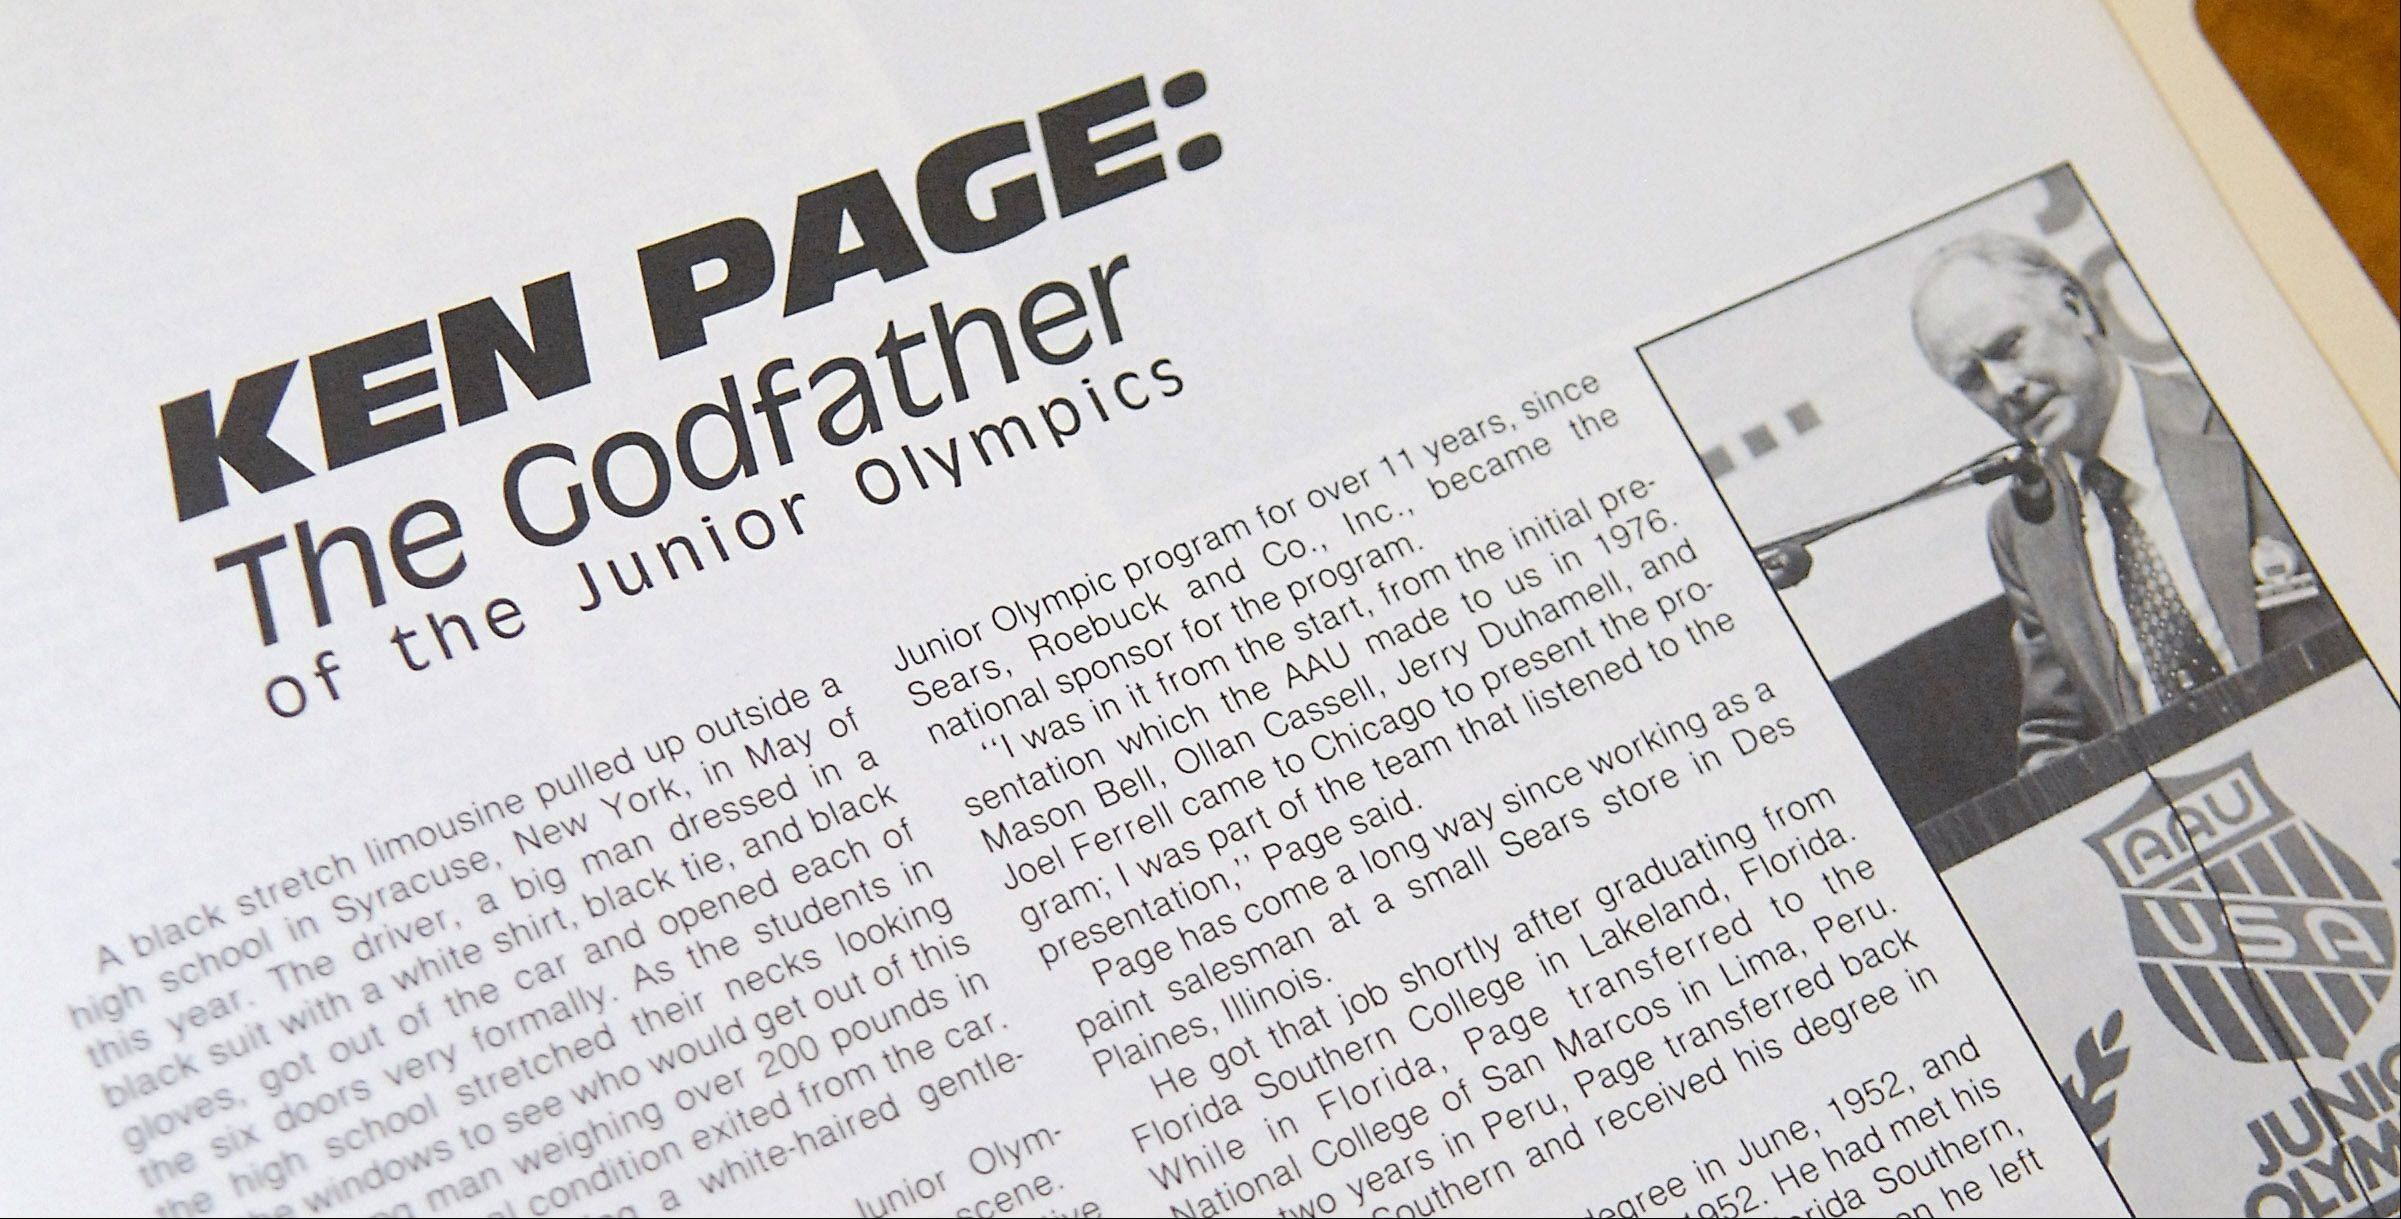 Ken Page worked for Sears throughout Latin America and got the company involved in Junior Olympics.